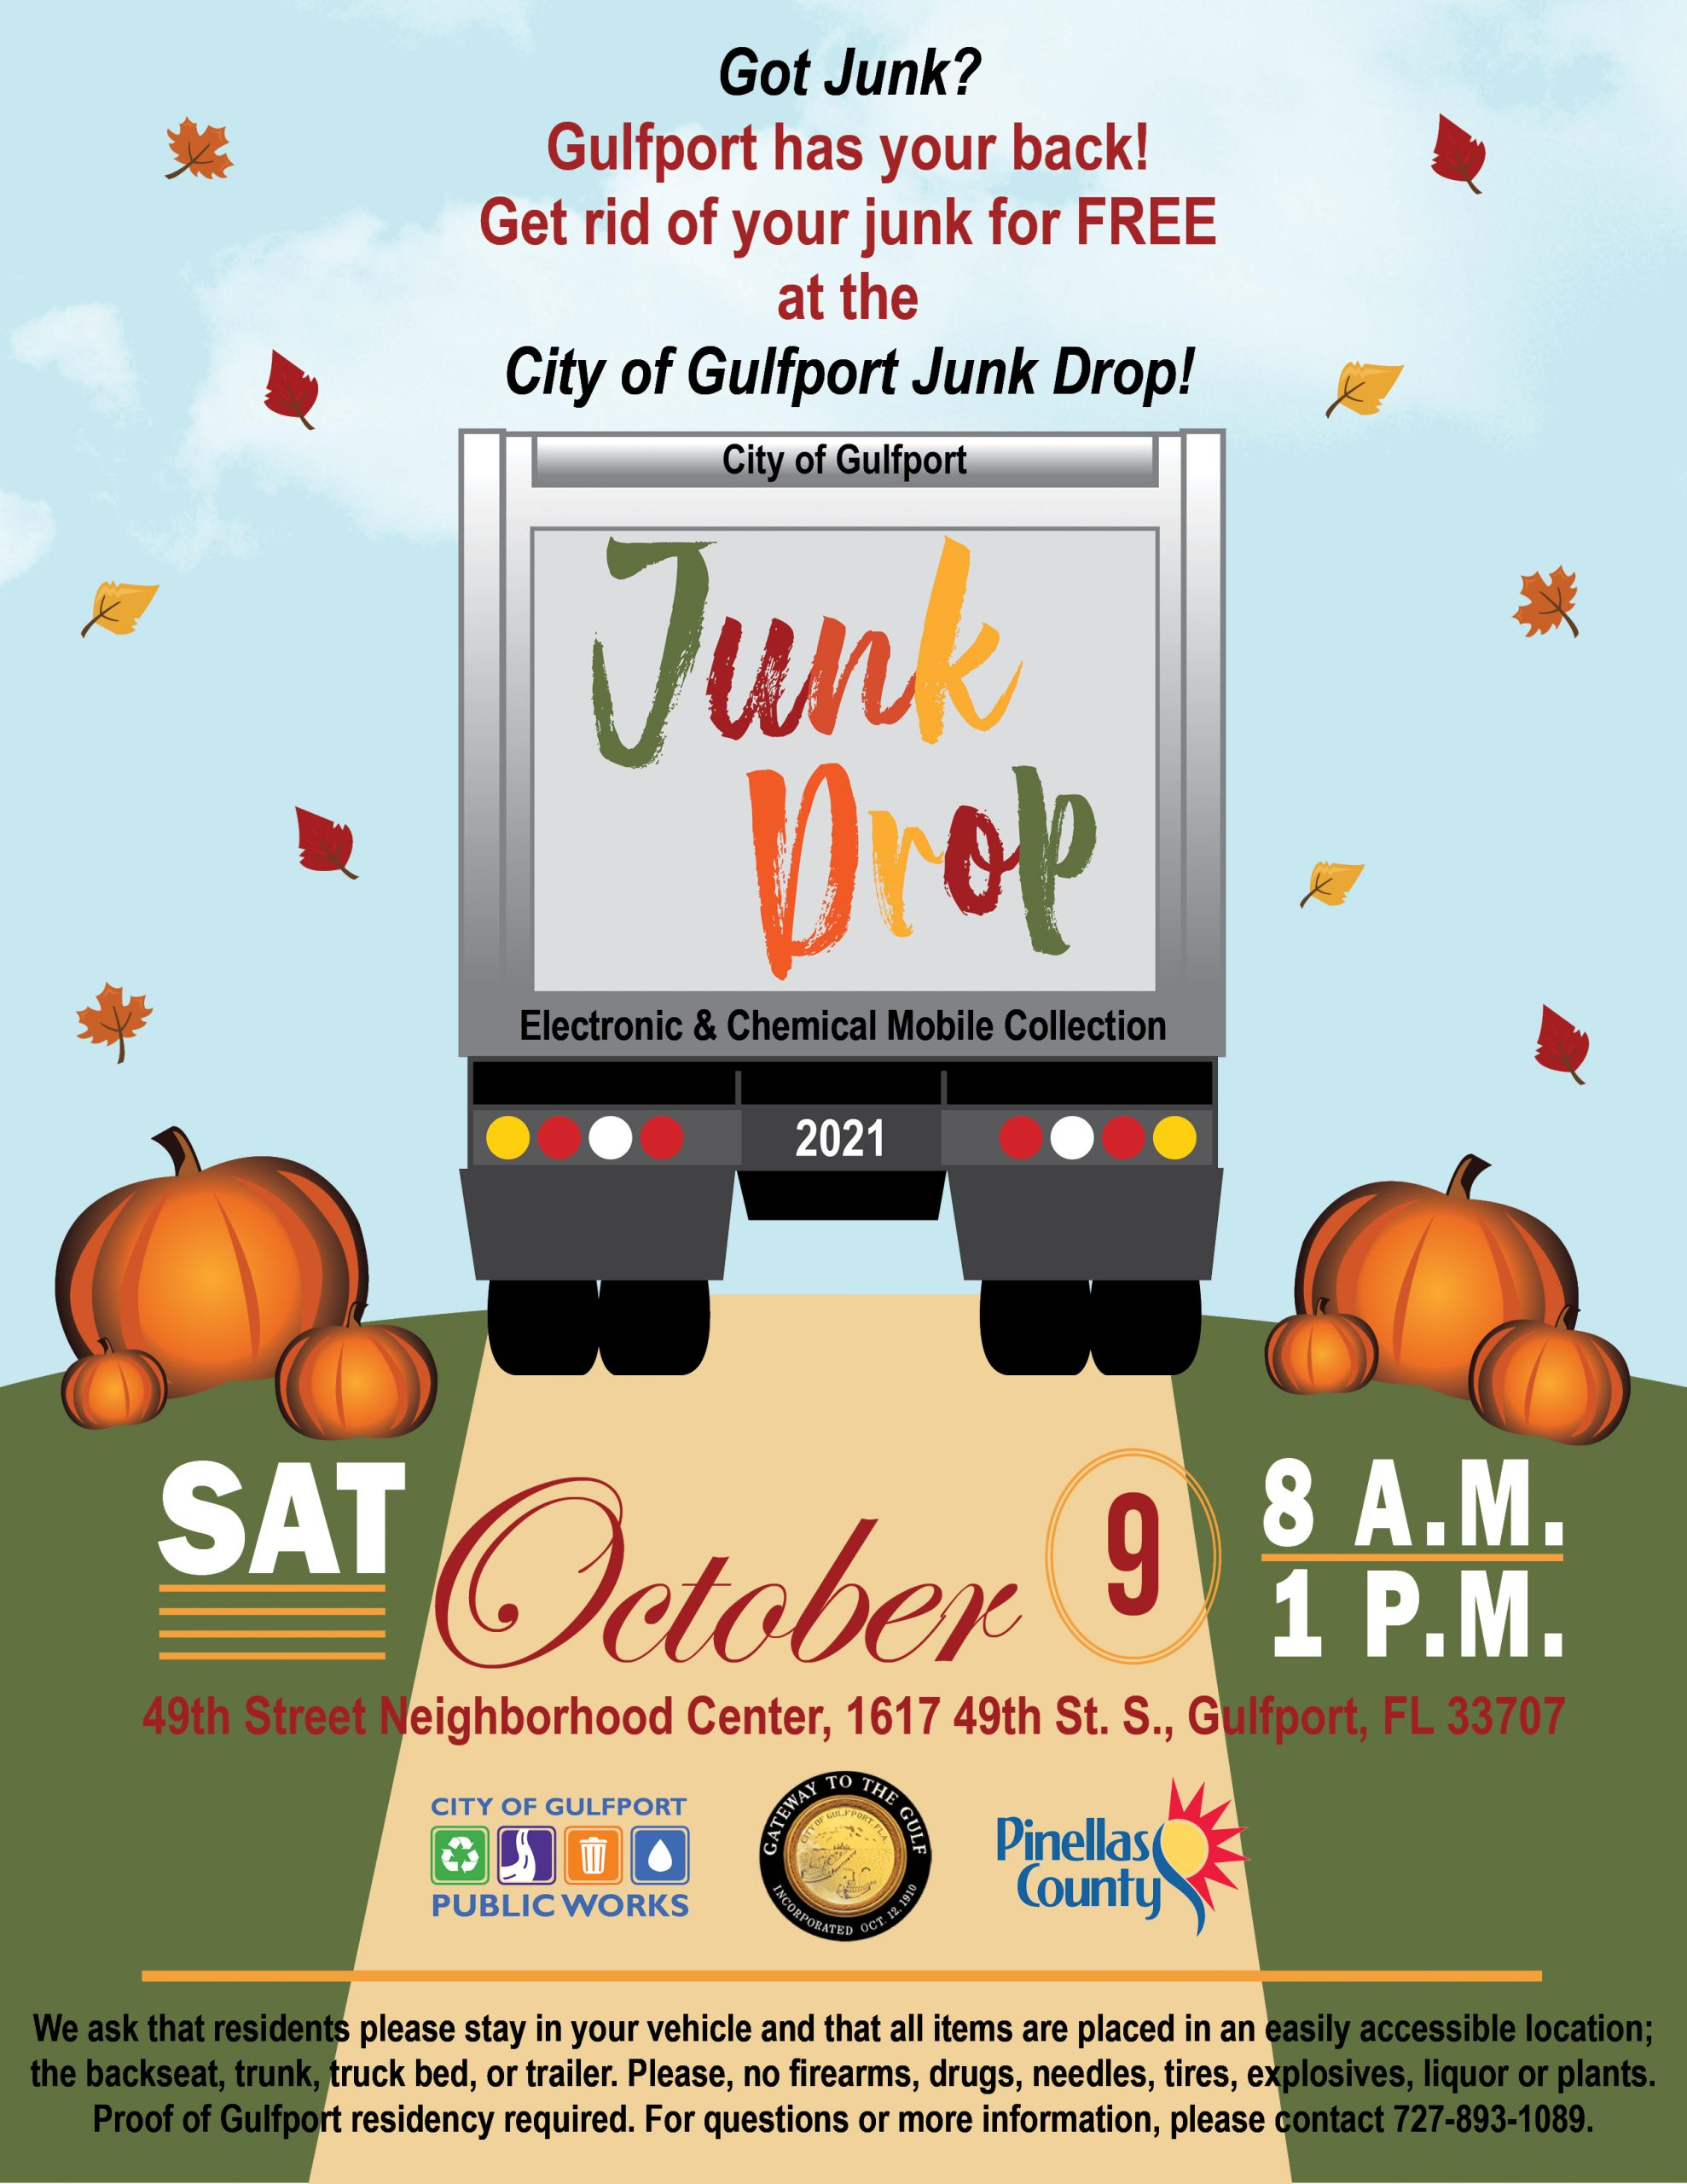 May be an image of text that says 'Got Junk? Gulfport has your back! Get rid of your junk for FREE at the City of Gulfport Junk Drop! City of Gulfport Junk Drop Electronic & Chemical Mobile Collection 2021 SAT October 9 8 A.M. to 1P.M. 49th Street Neighborhood Center, 1617 49th St. S. Picture of truck with pumpkins and fall leaves.